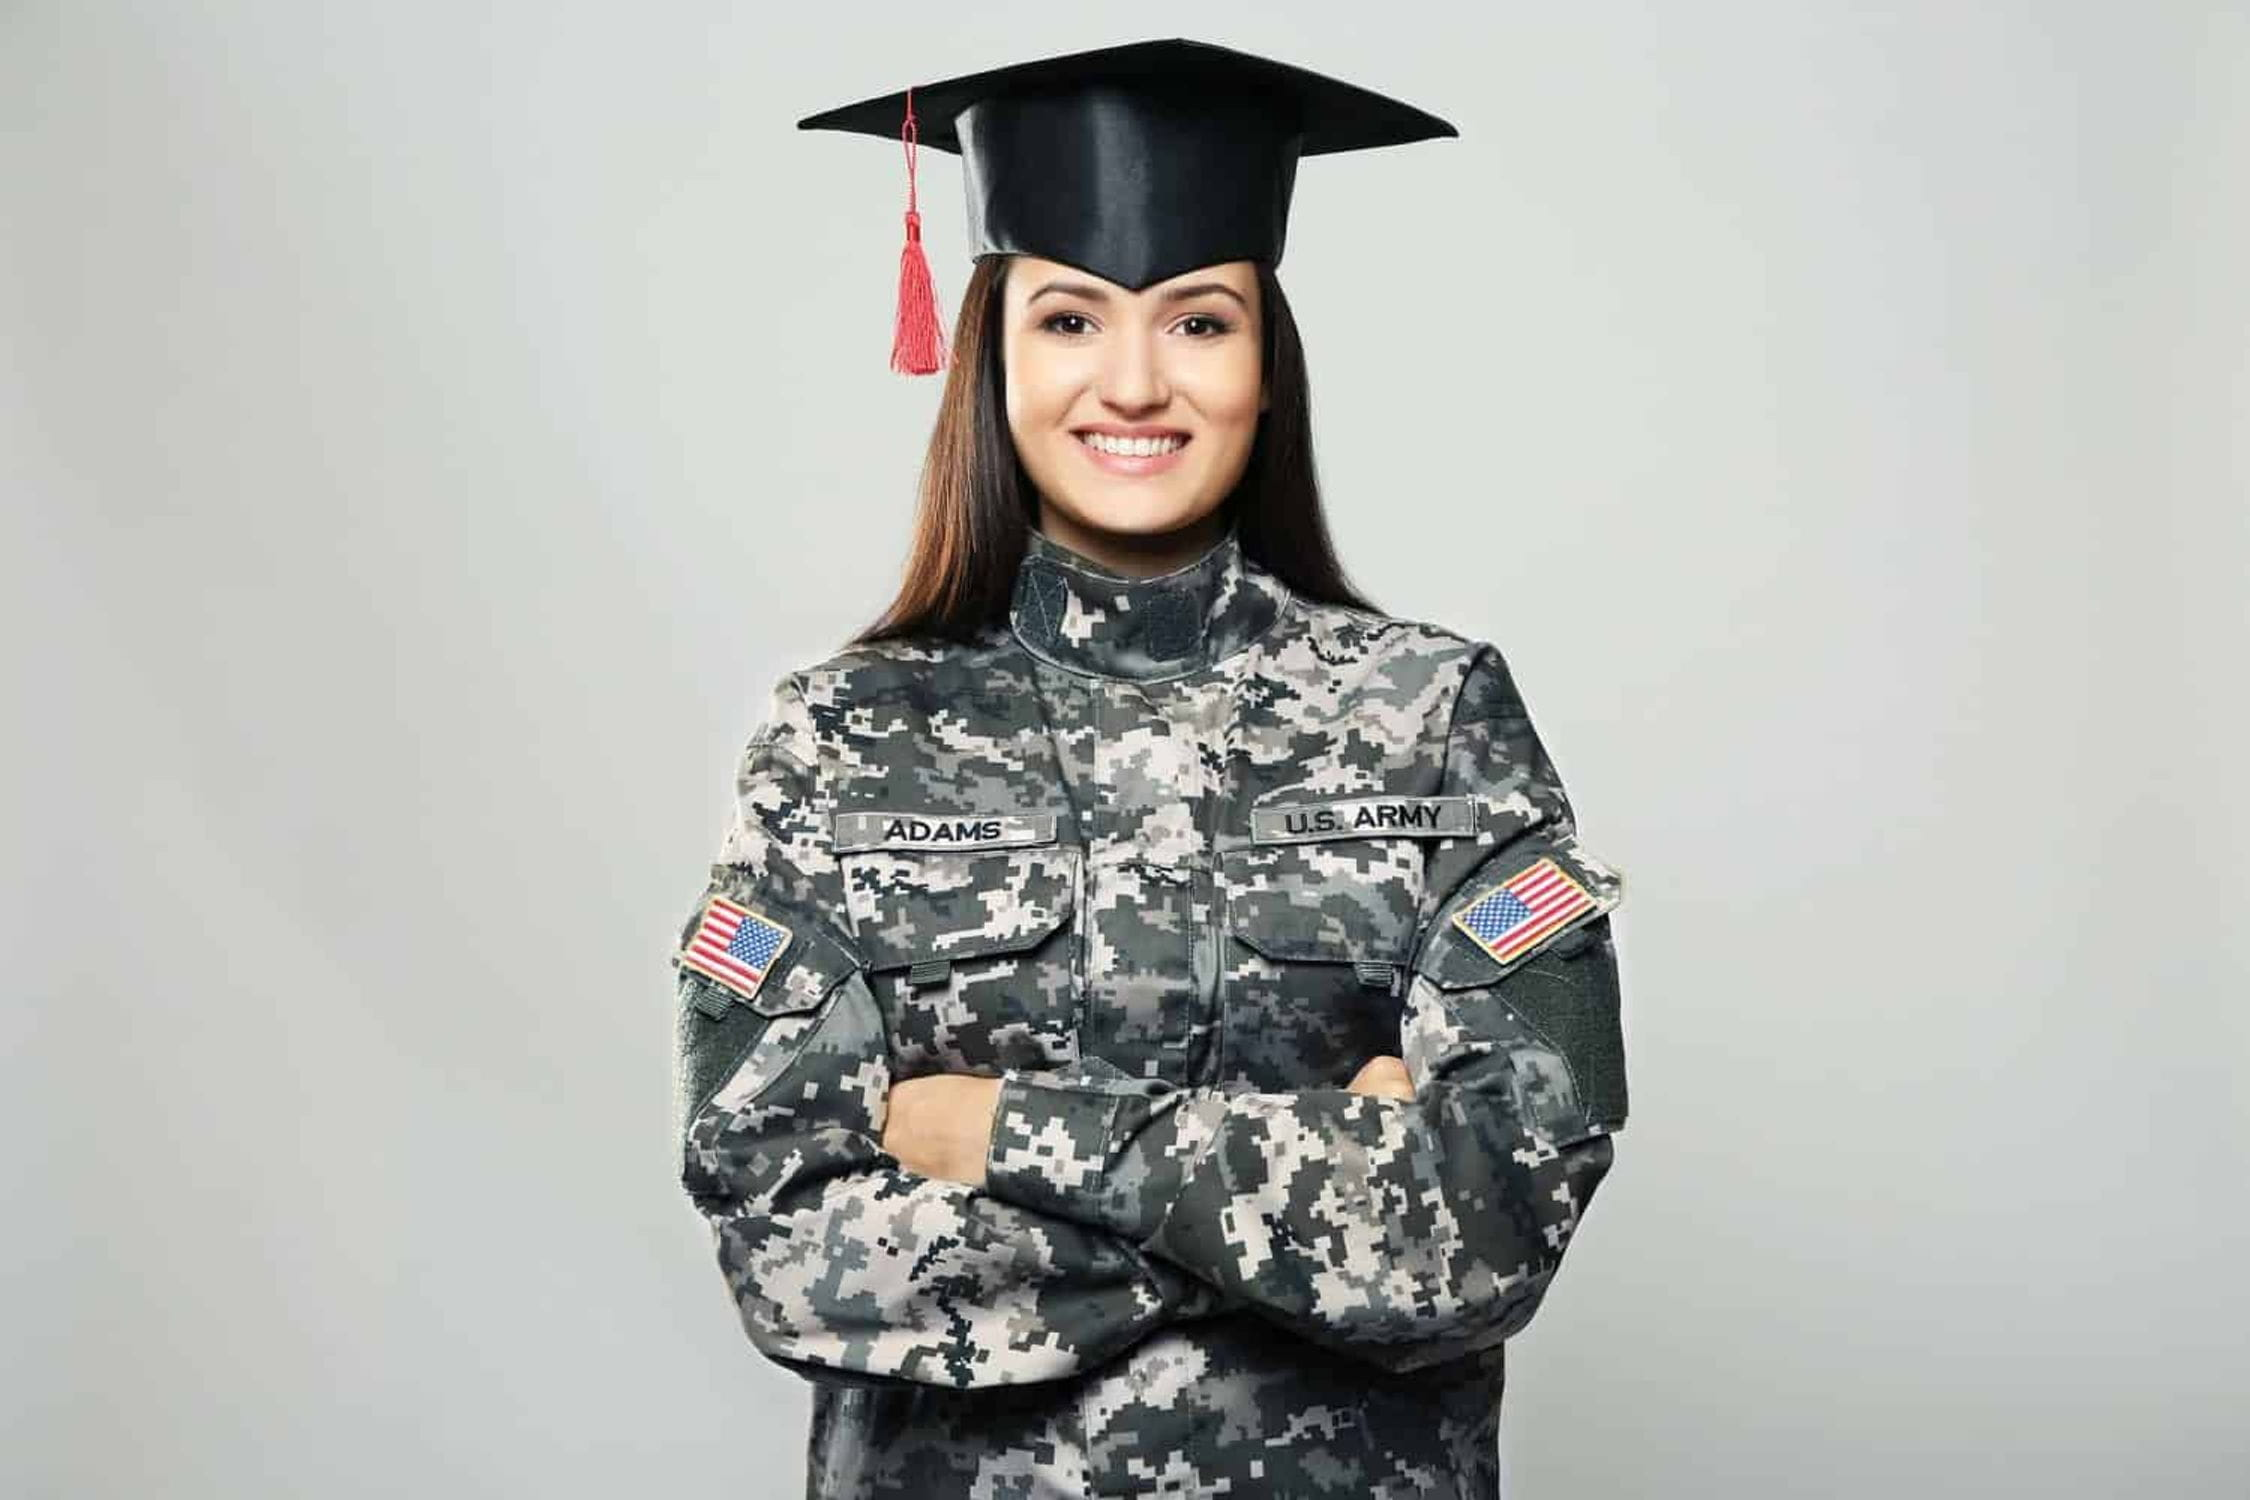 Female army soldier wearing graduation cap.